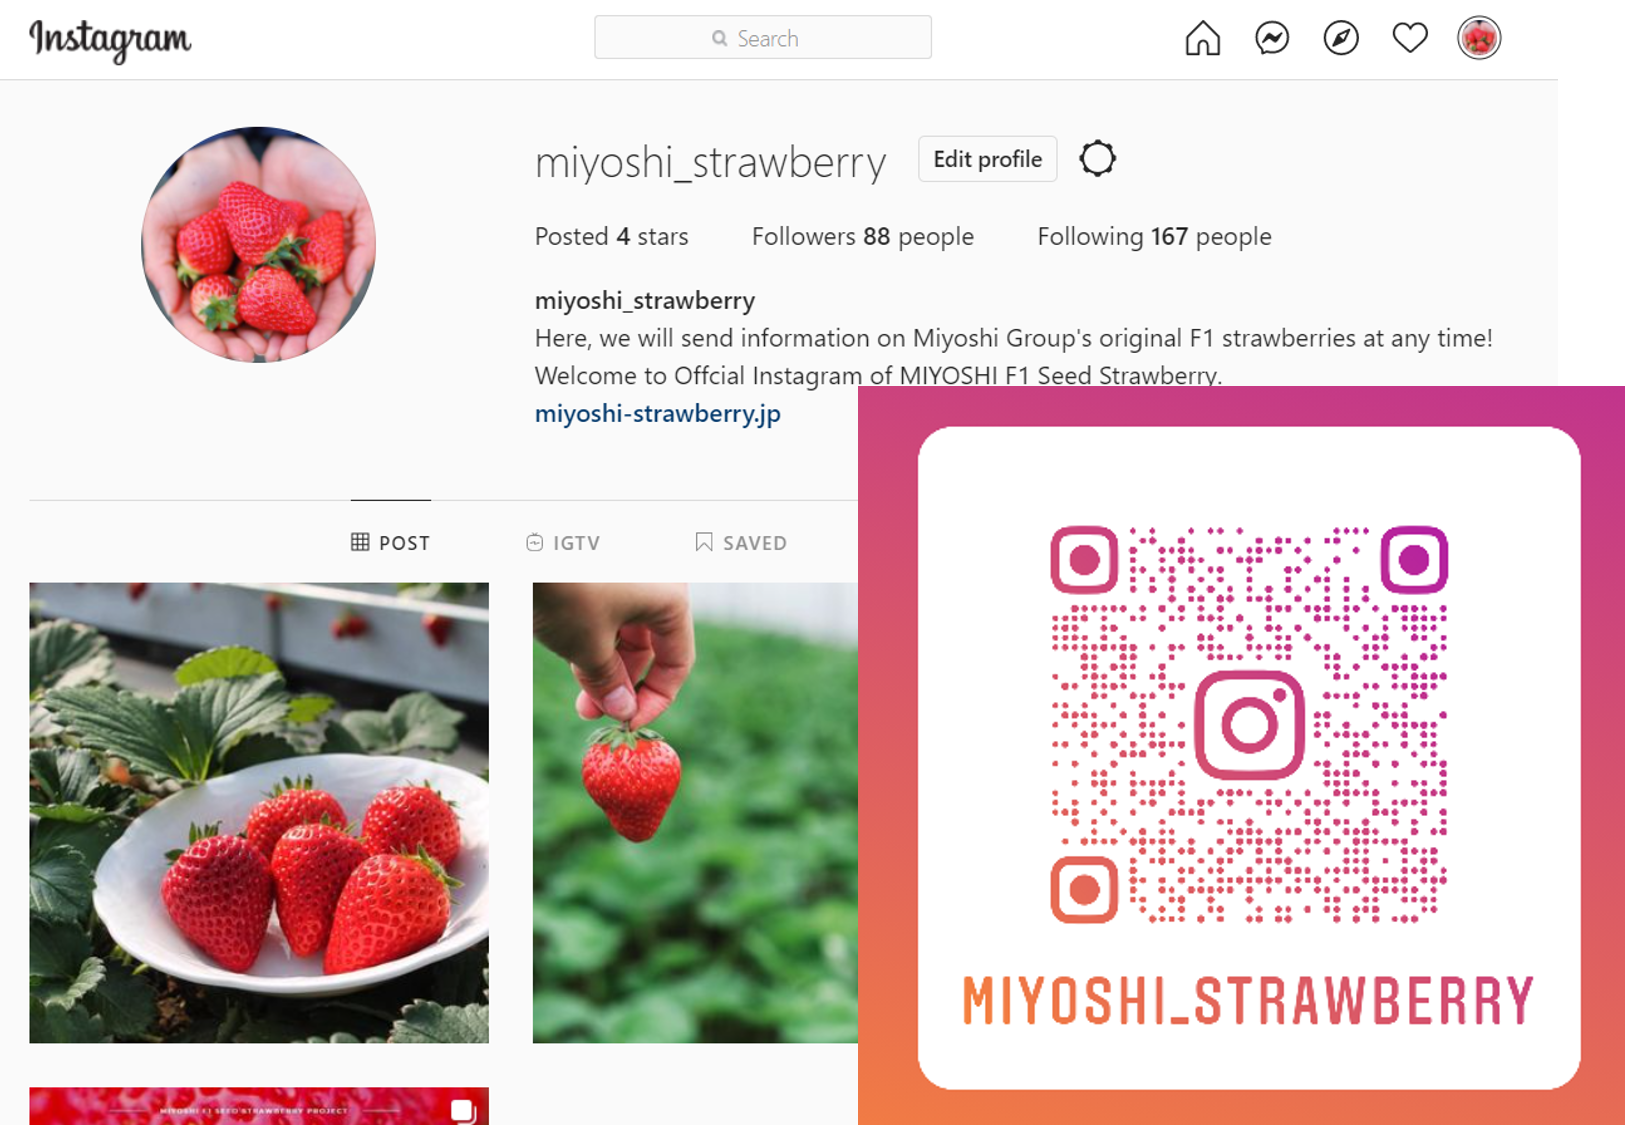 The official Instagram starts showing MIYOSHI strawberry world.